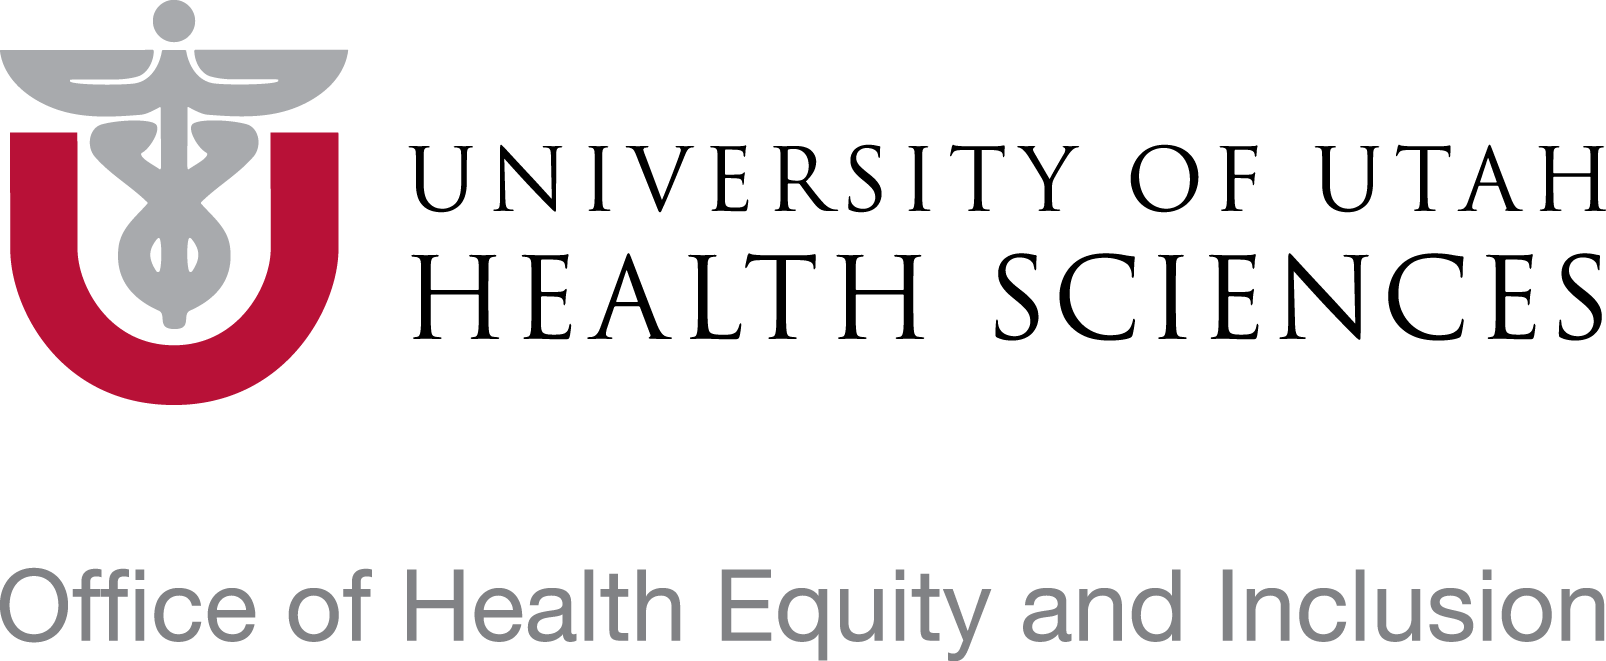 U of U Health Sciences Office of Health, Equity, and Inclusion